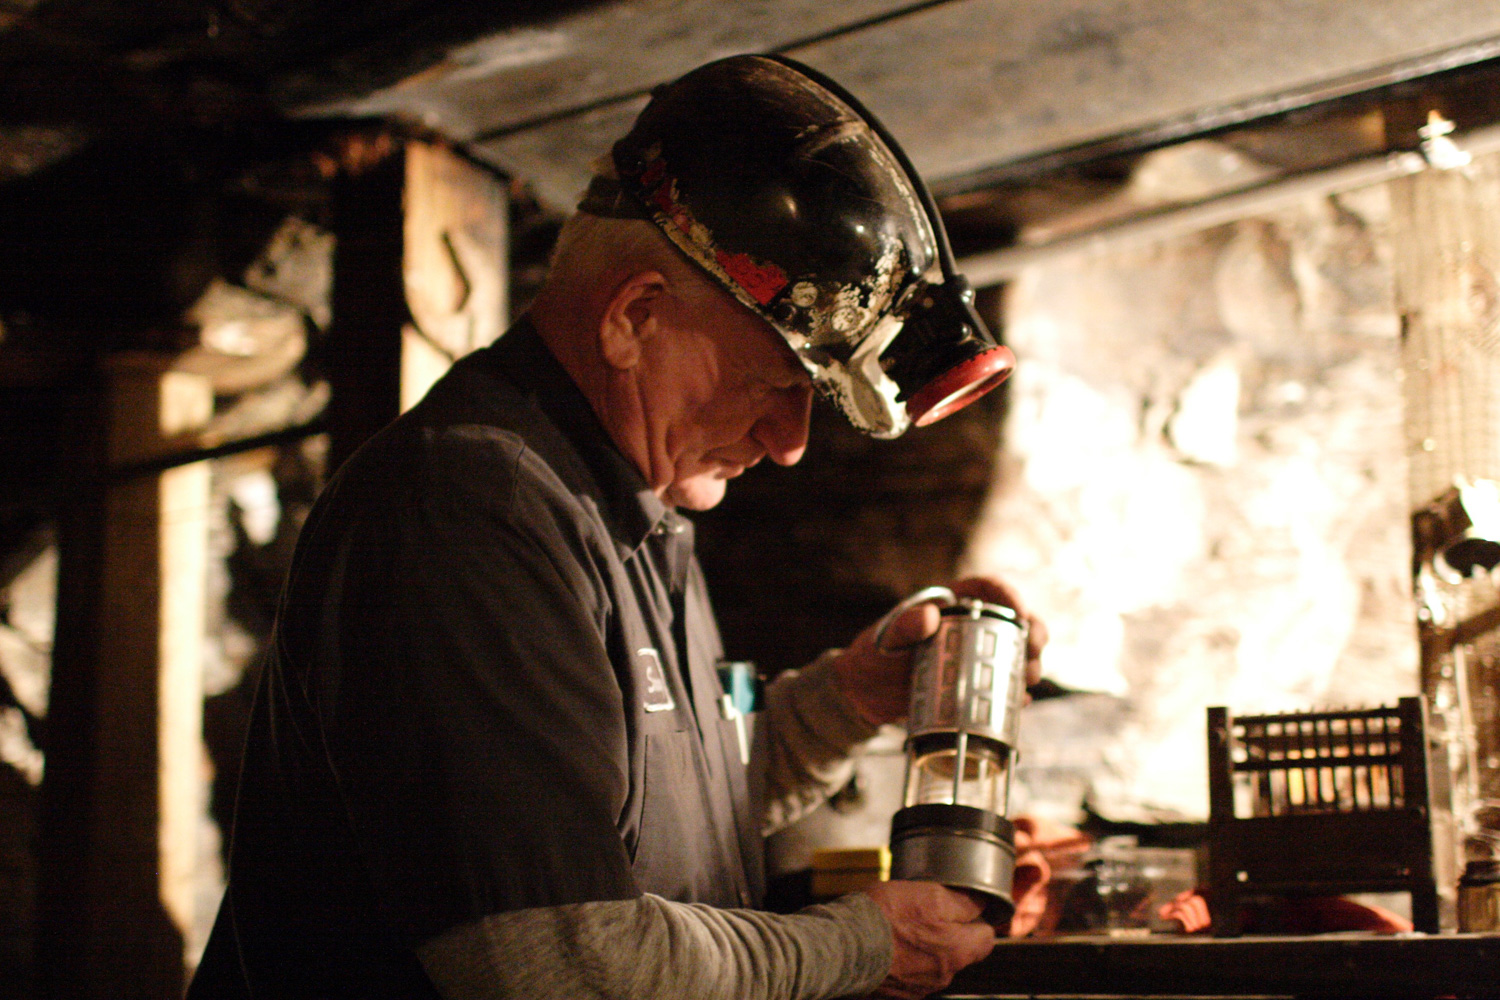 Sonny in the mine.